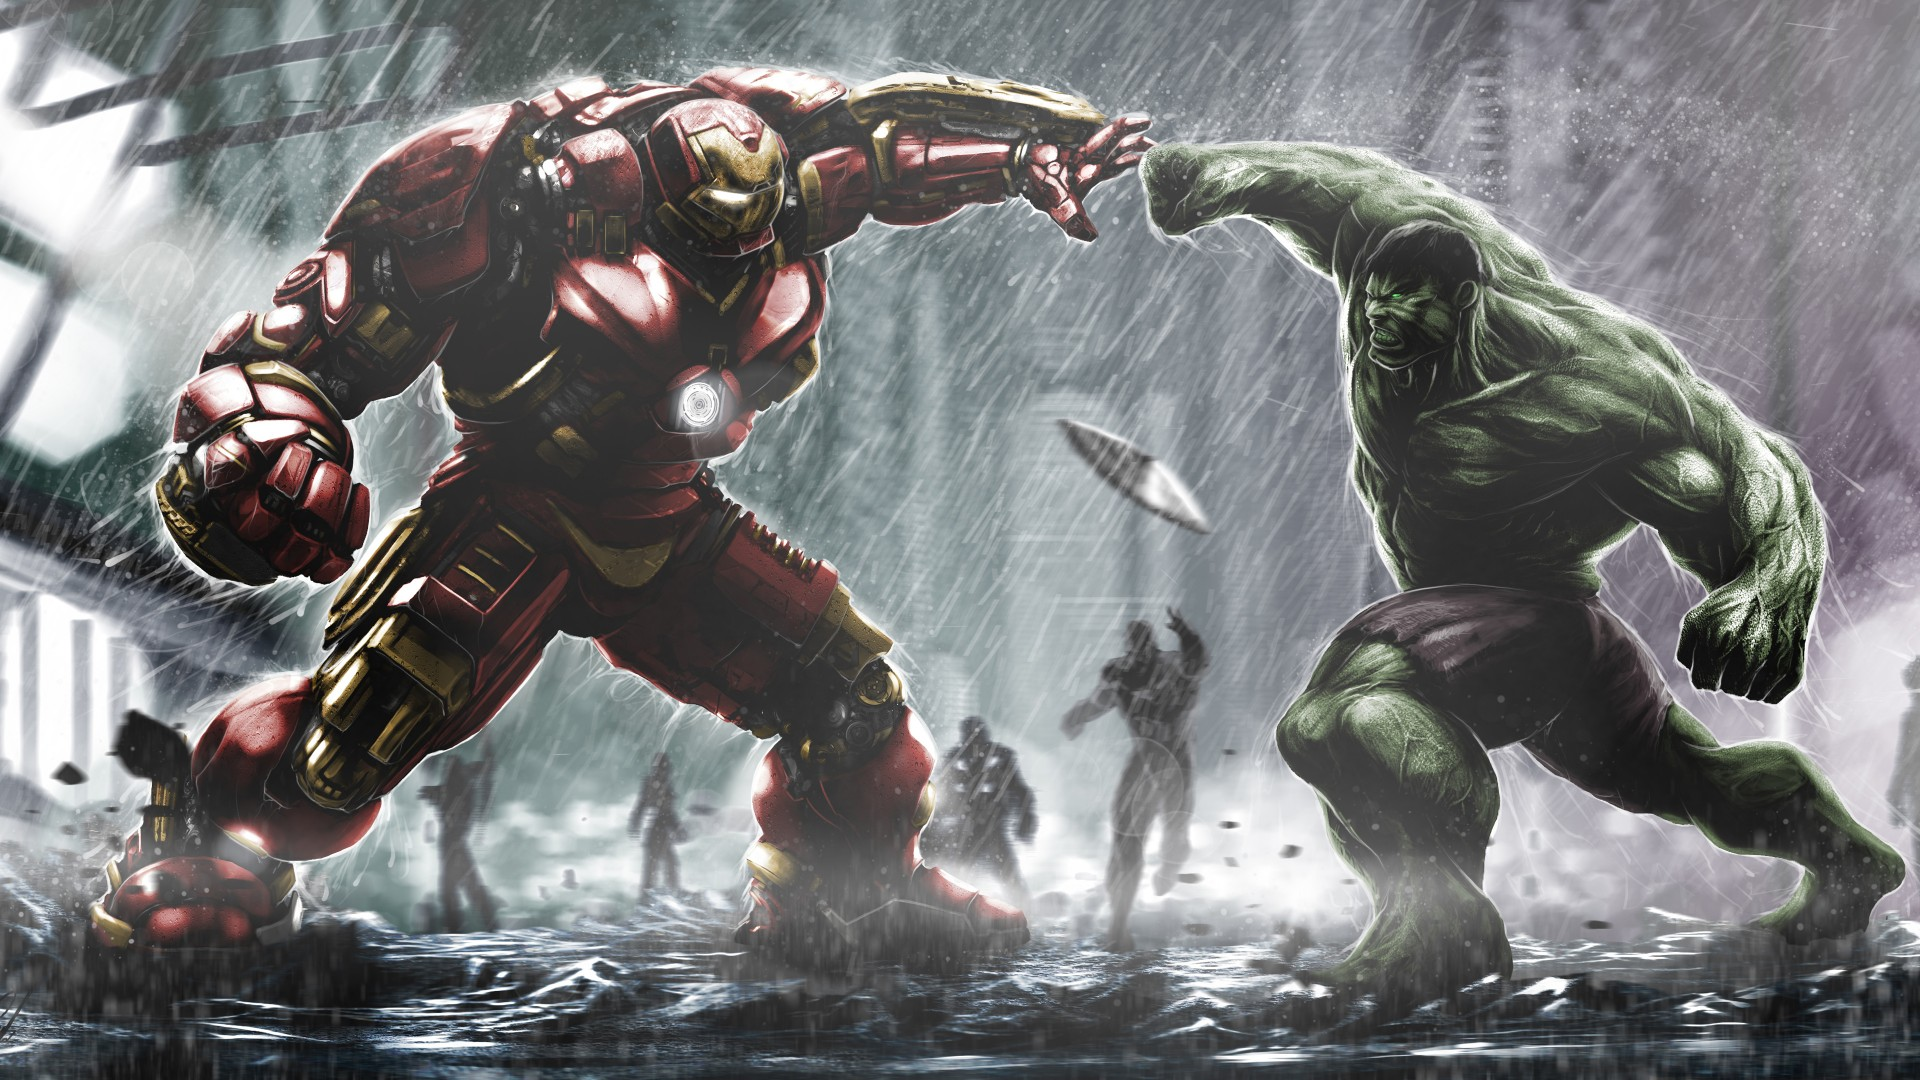 Iron Man Hulkbuster Vs Hulk Wallpaper   Wallpaper Stream 1920x1080